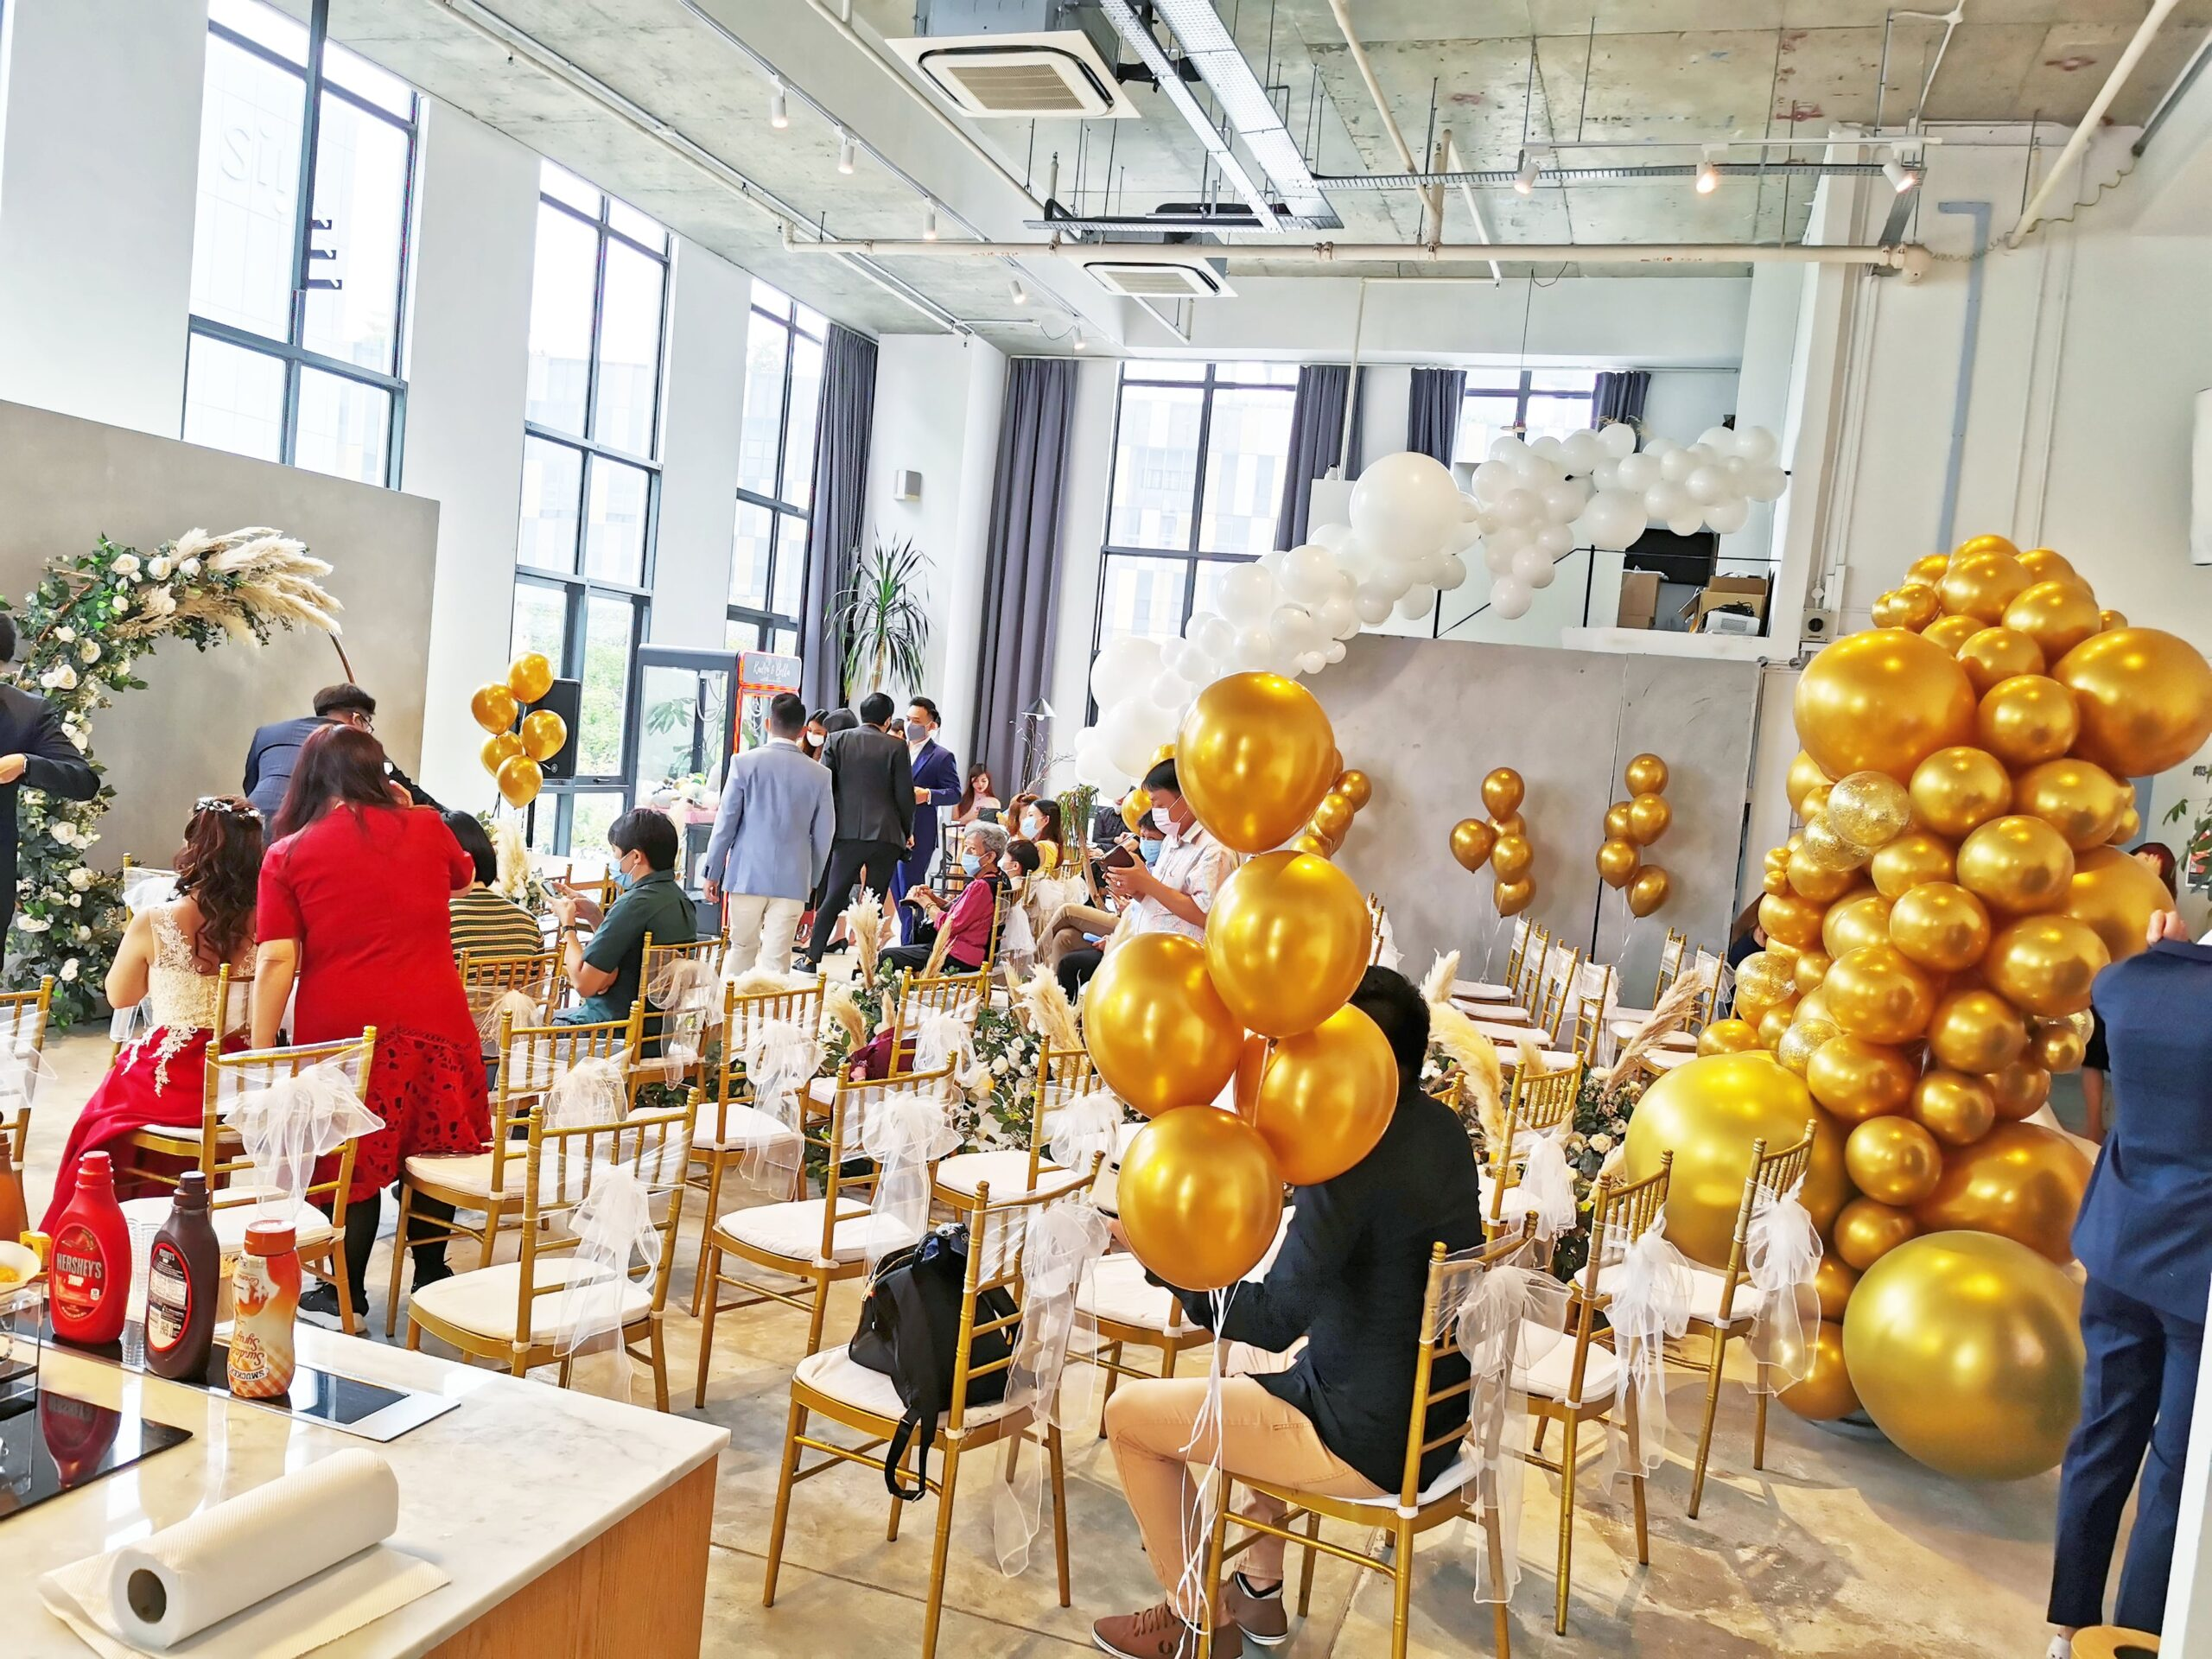 Event Space Balloon decorations scaled